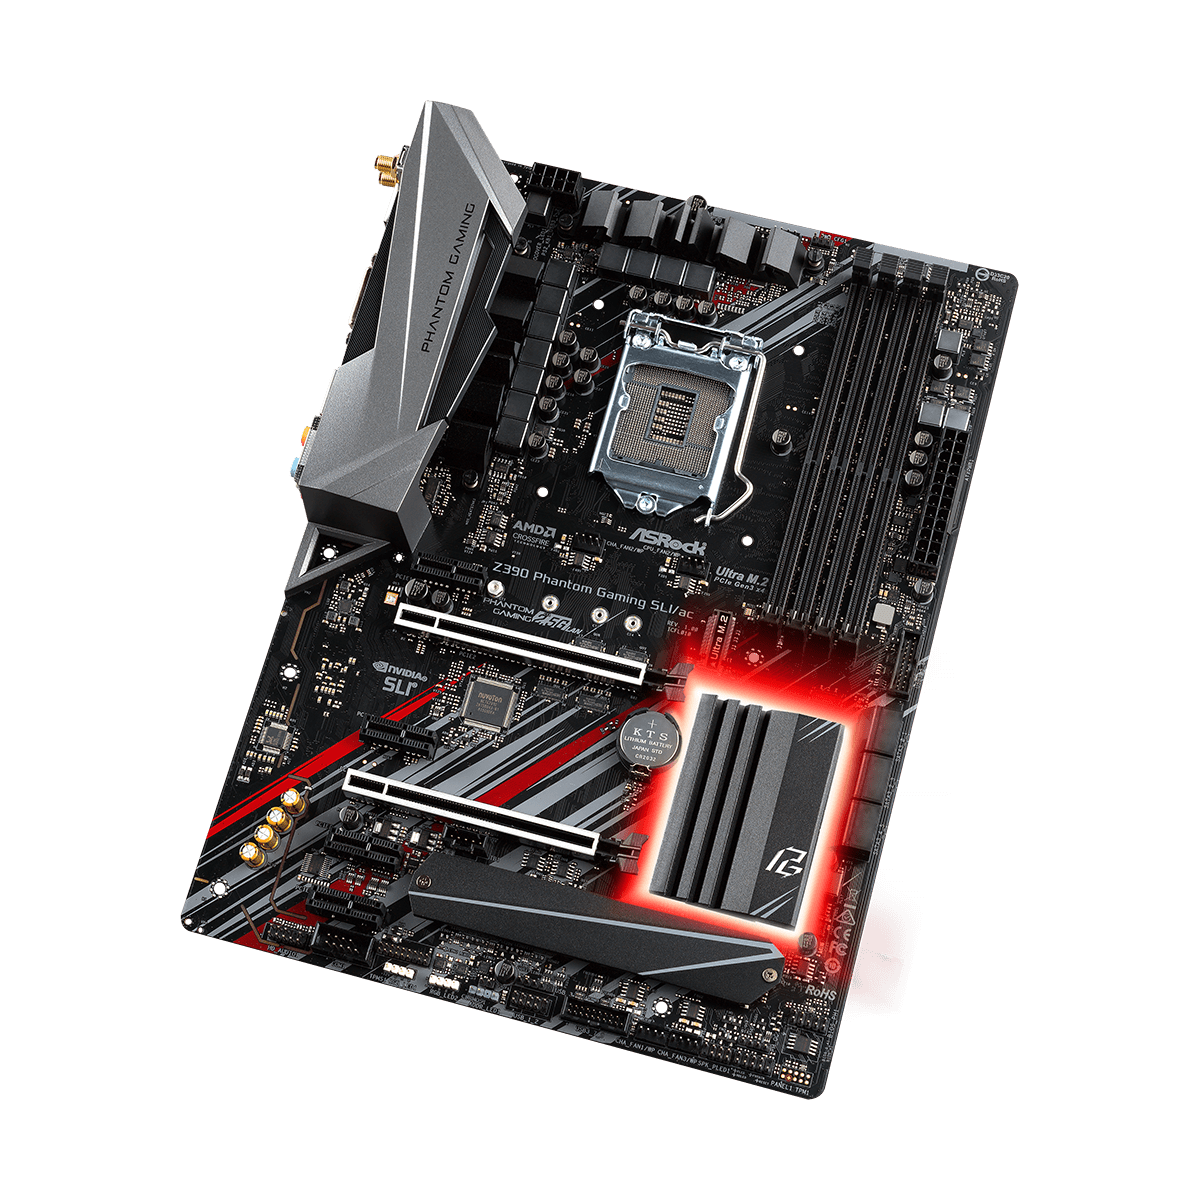 Placa Mãe Asrock Z390 Phantom Gaming SLI/ac, Chipset Z390, Intel LGA 1151, ATX, DDR4